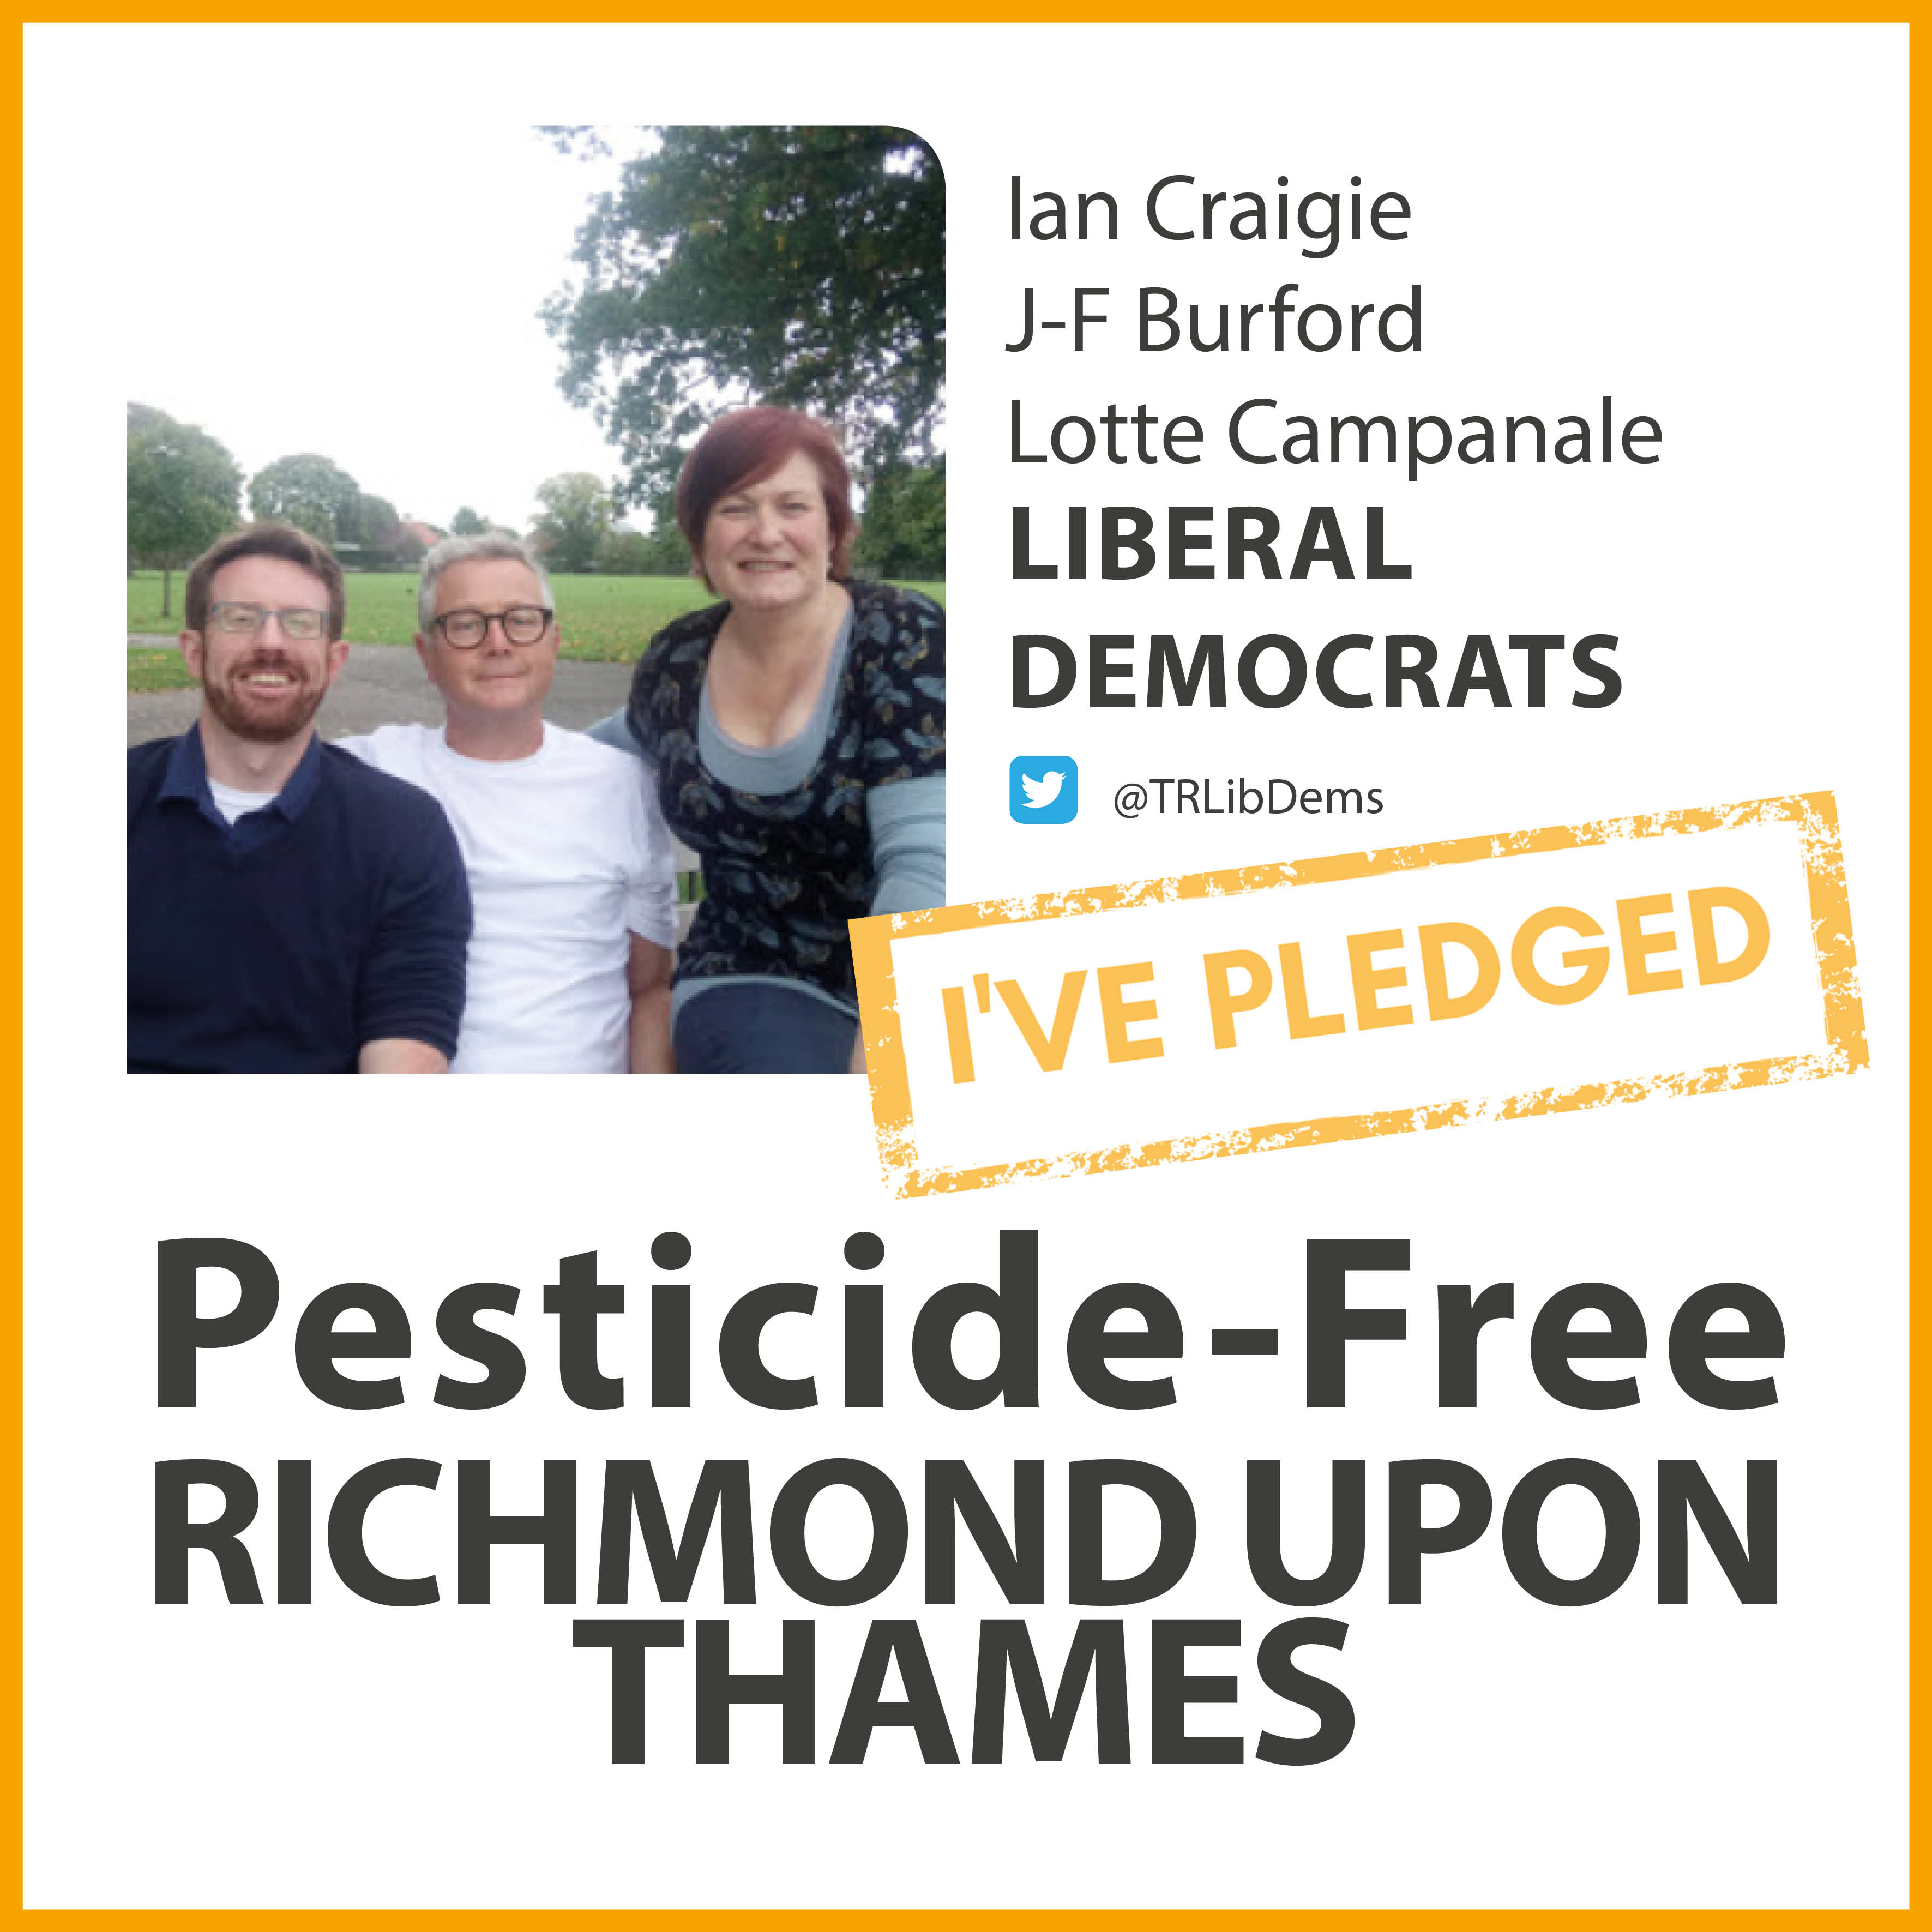 Kew Lib Dems have taken the pesticide-free pledge